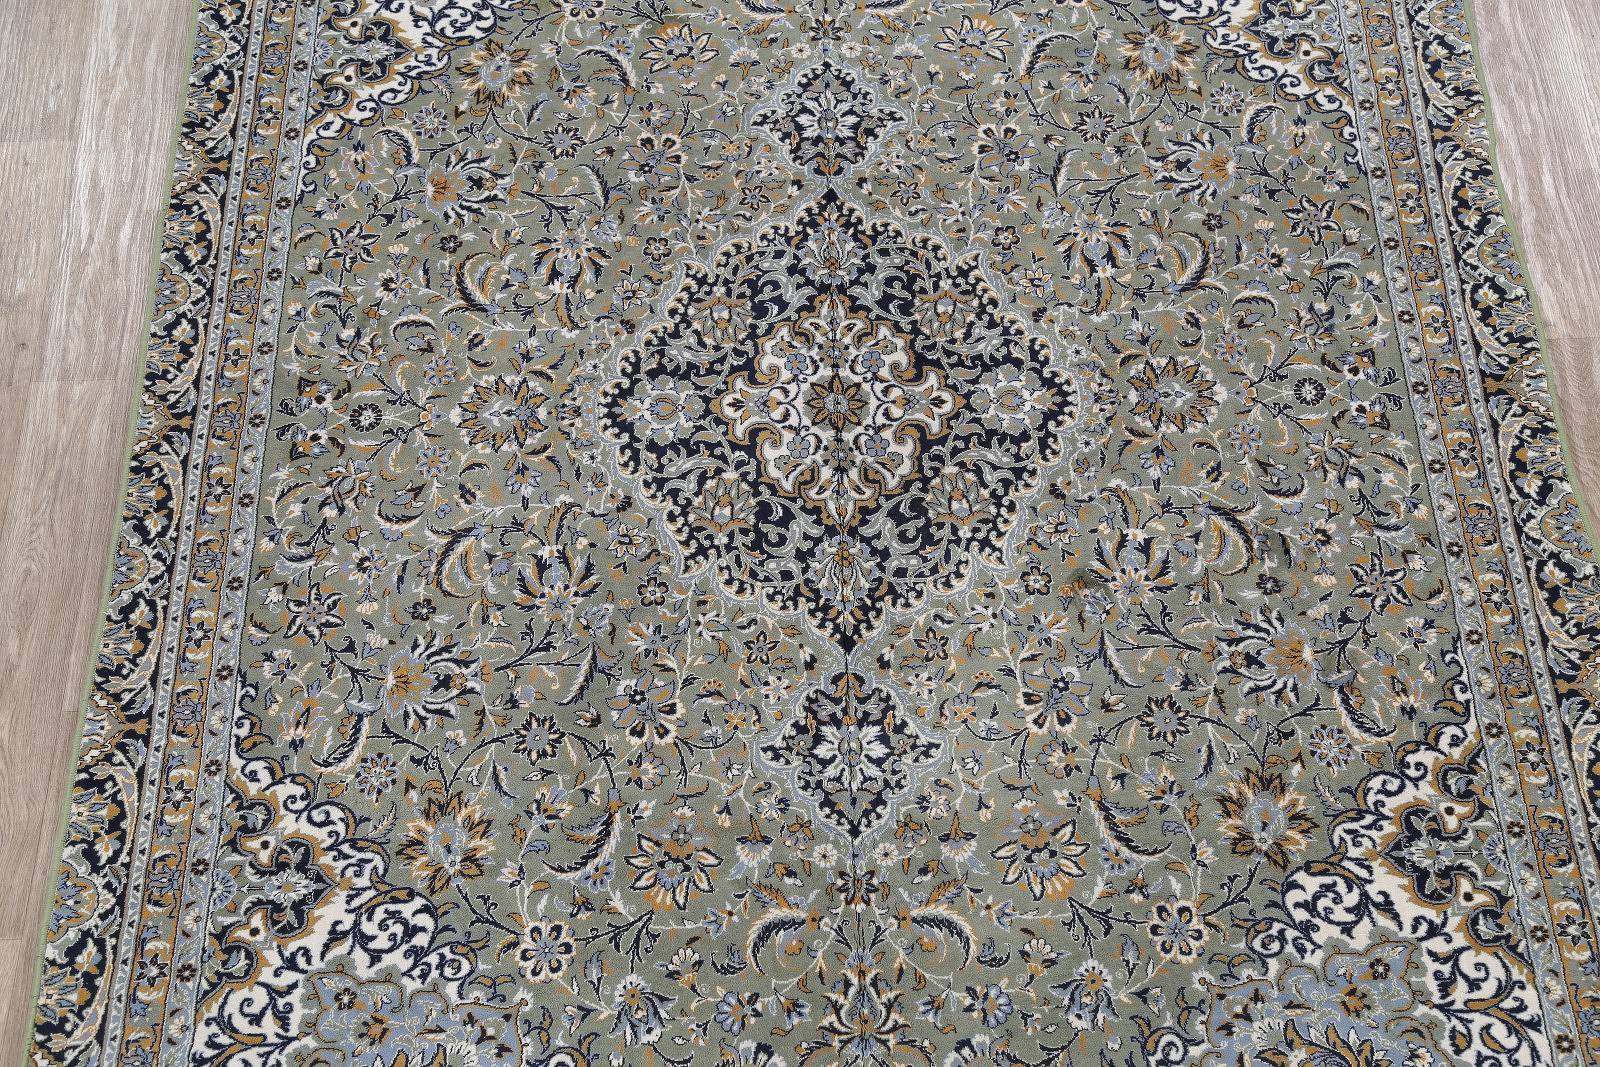 Soft Pile Floral Kashan Persian Style Area Rug 8x11